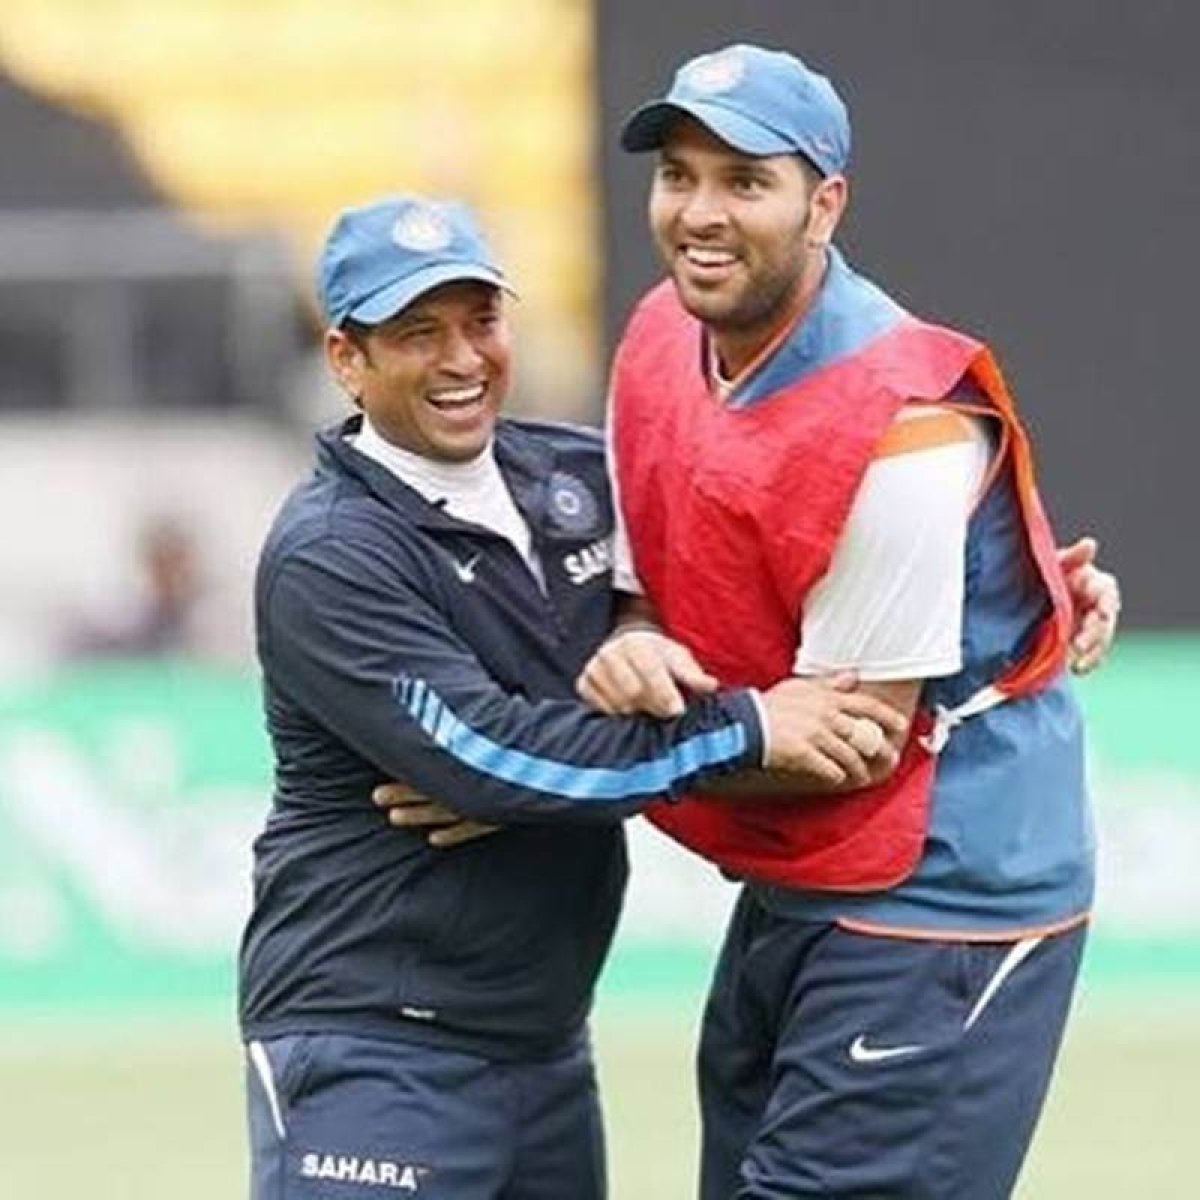 Yuvraj Singh 300 Not out: Sachin Tendulkar's post should make Yuvi's day